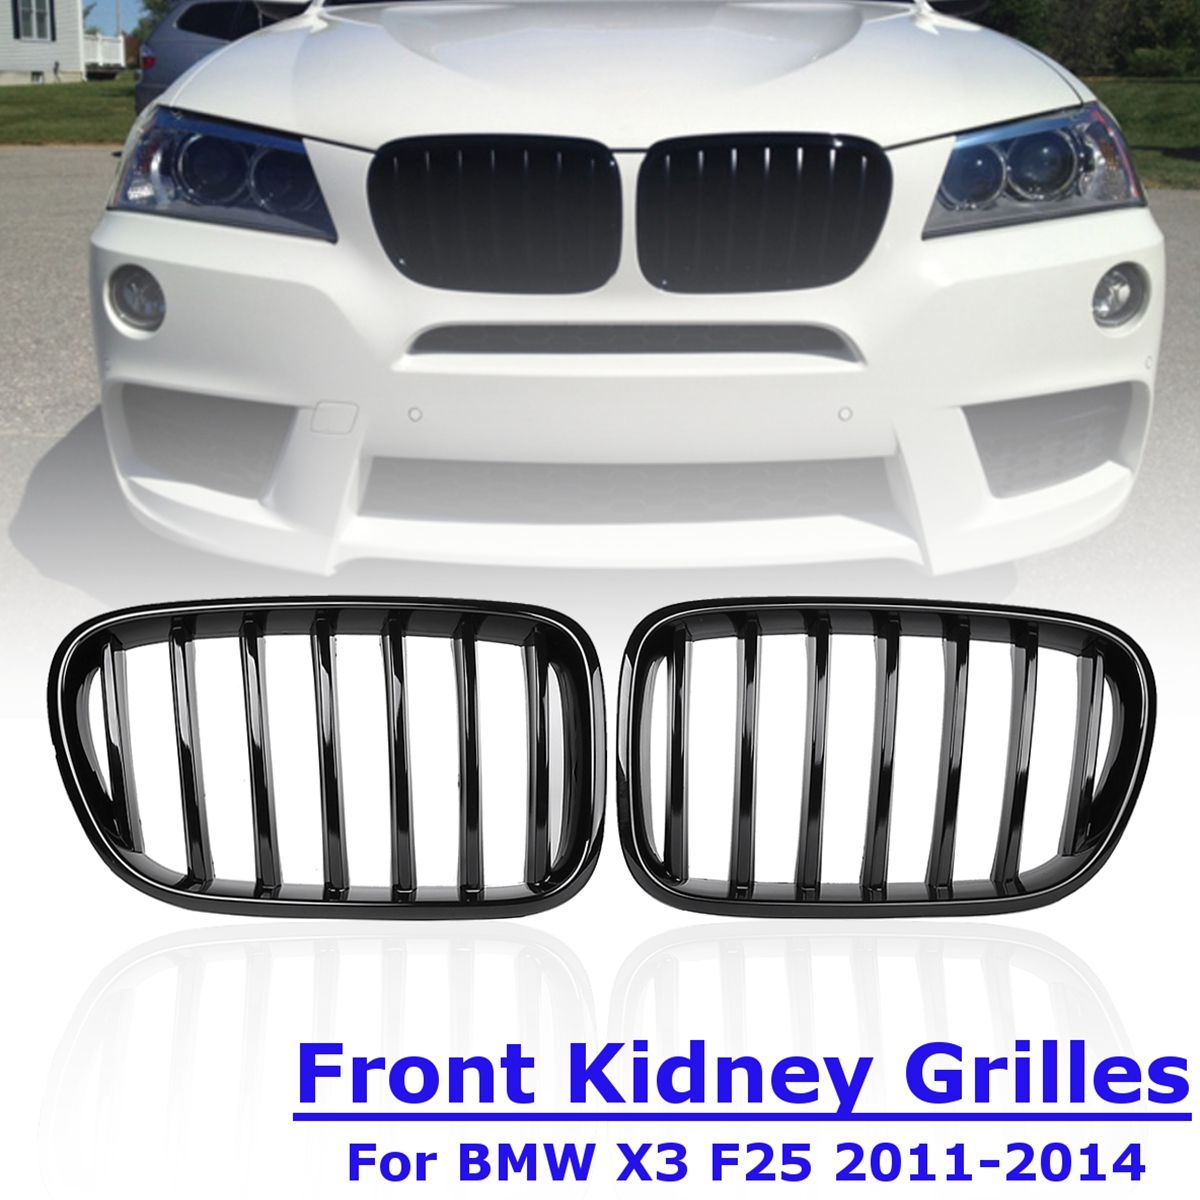 1Pair Front Kidney Grille Gloss Black Replacement Racing Grills for BMW X3 F25 2011 2012 2013 2014